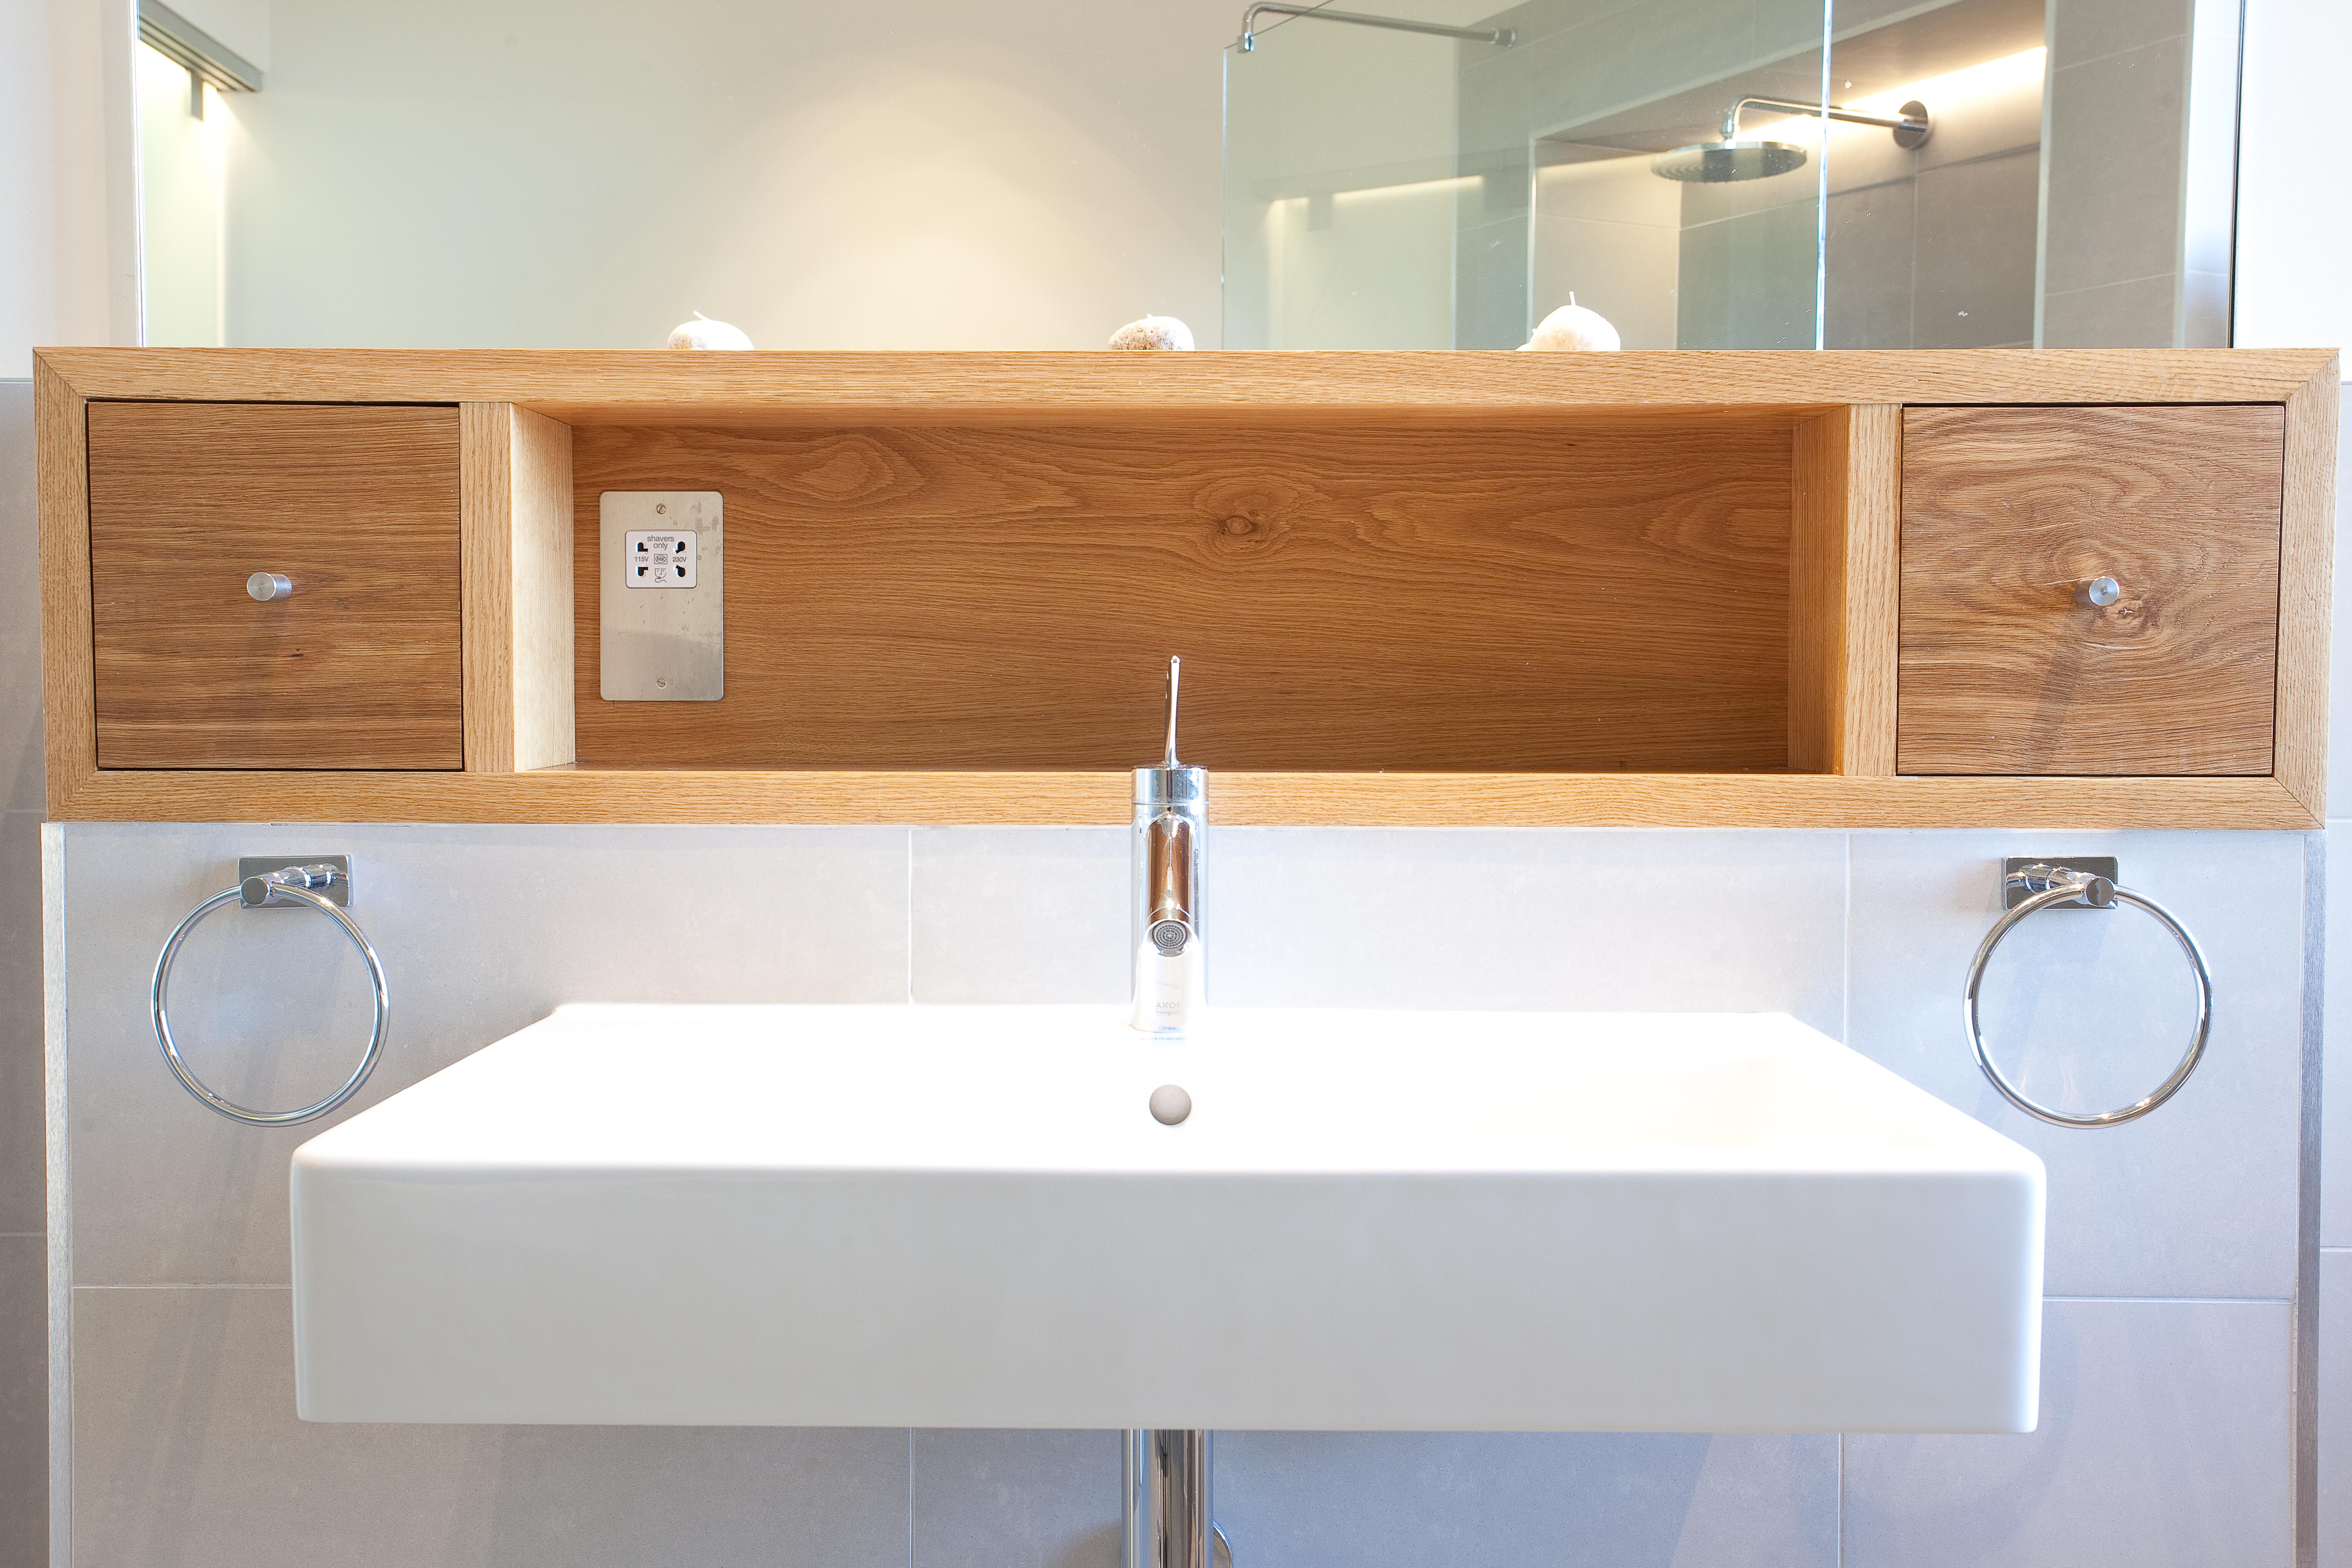 Sleek and contemporary white sink with open wood shelf and mirror above.